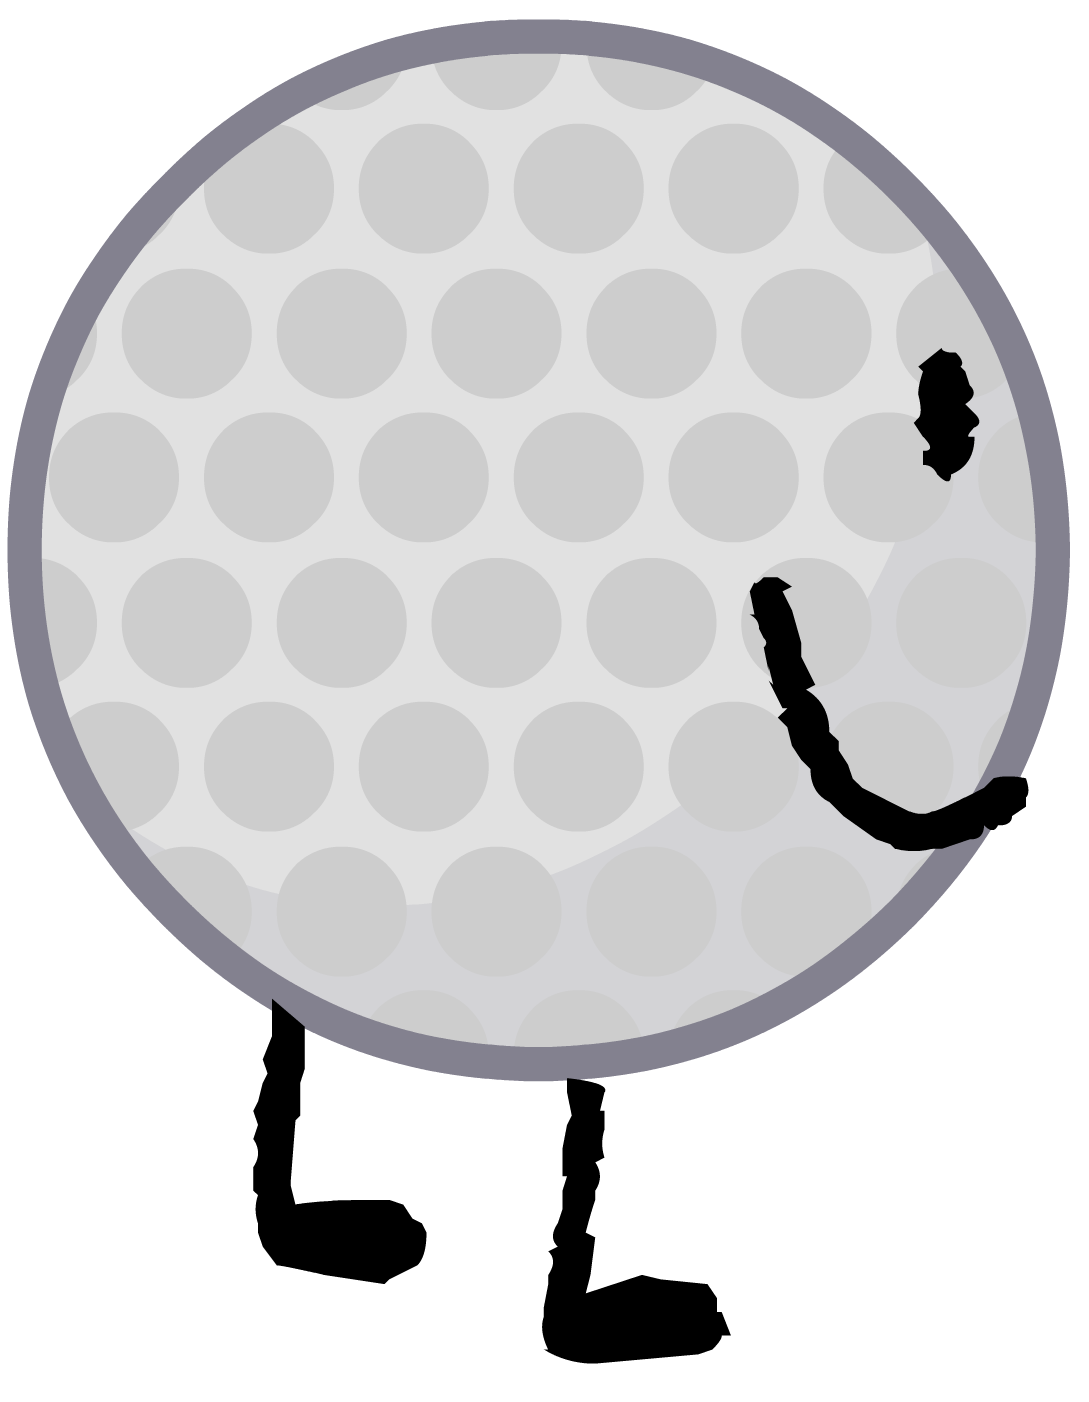 Black and white golf ball png. Image intro battle for